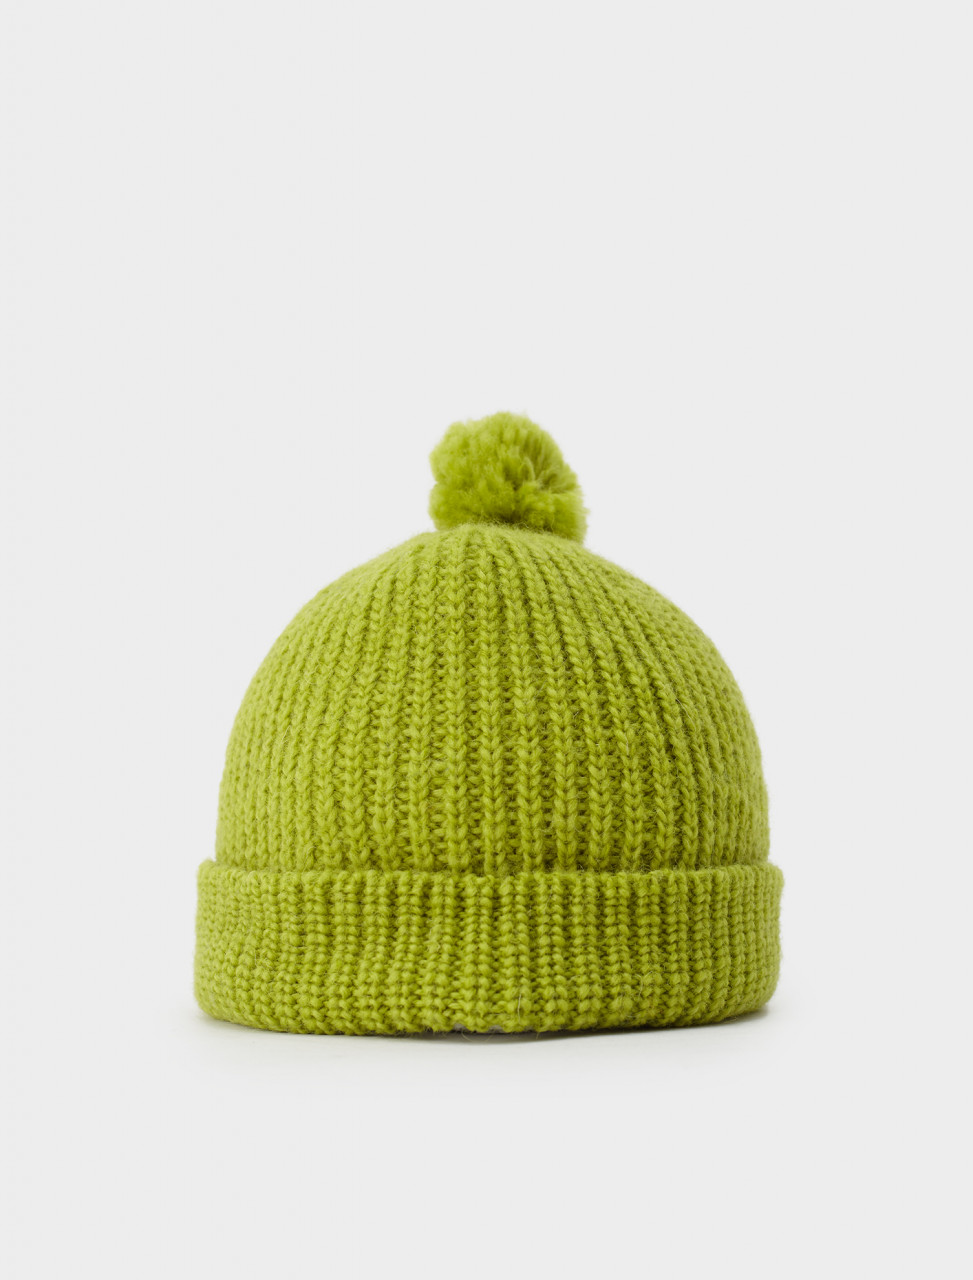 260-202-22206-1703-201 DRIES VAN NOTEN MAS HAT LIME